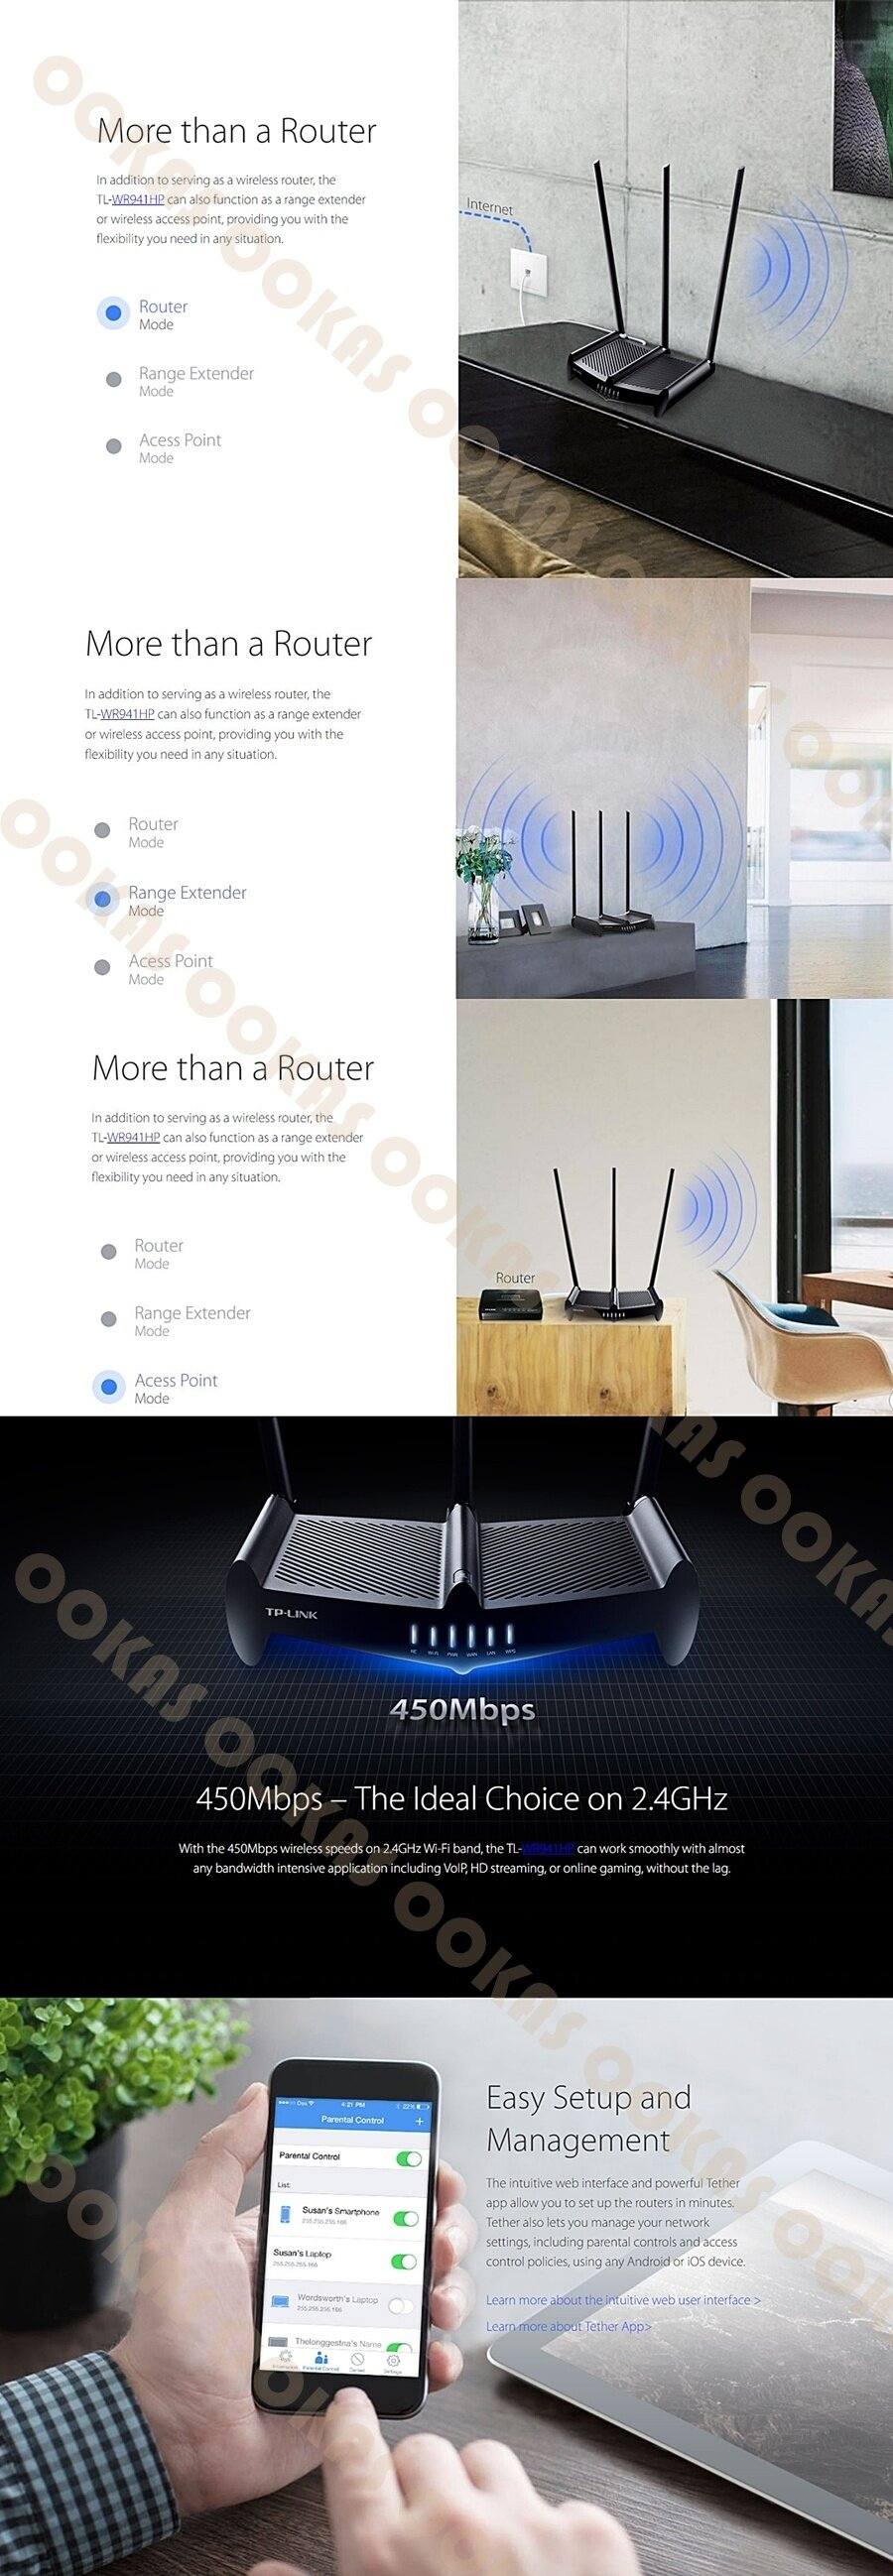 TP-LINK High Power 450Mbps 3x9dbi Wireless Router TL-WR941HP Unifi Maxis  Time